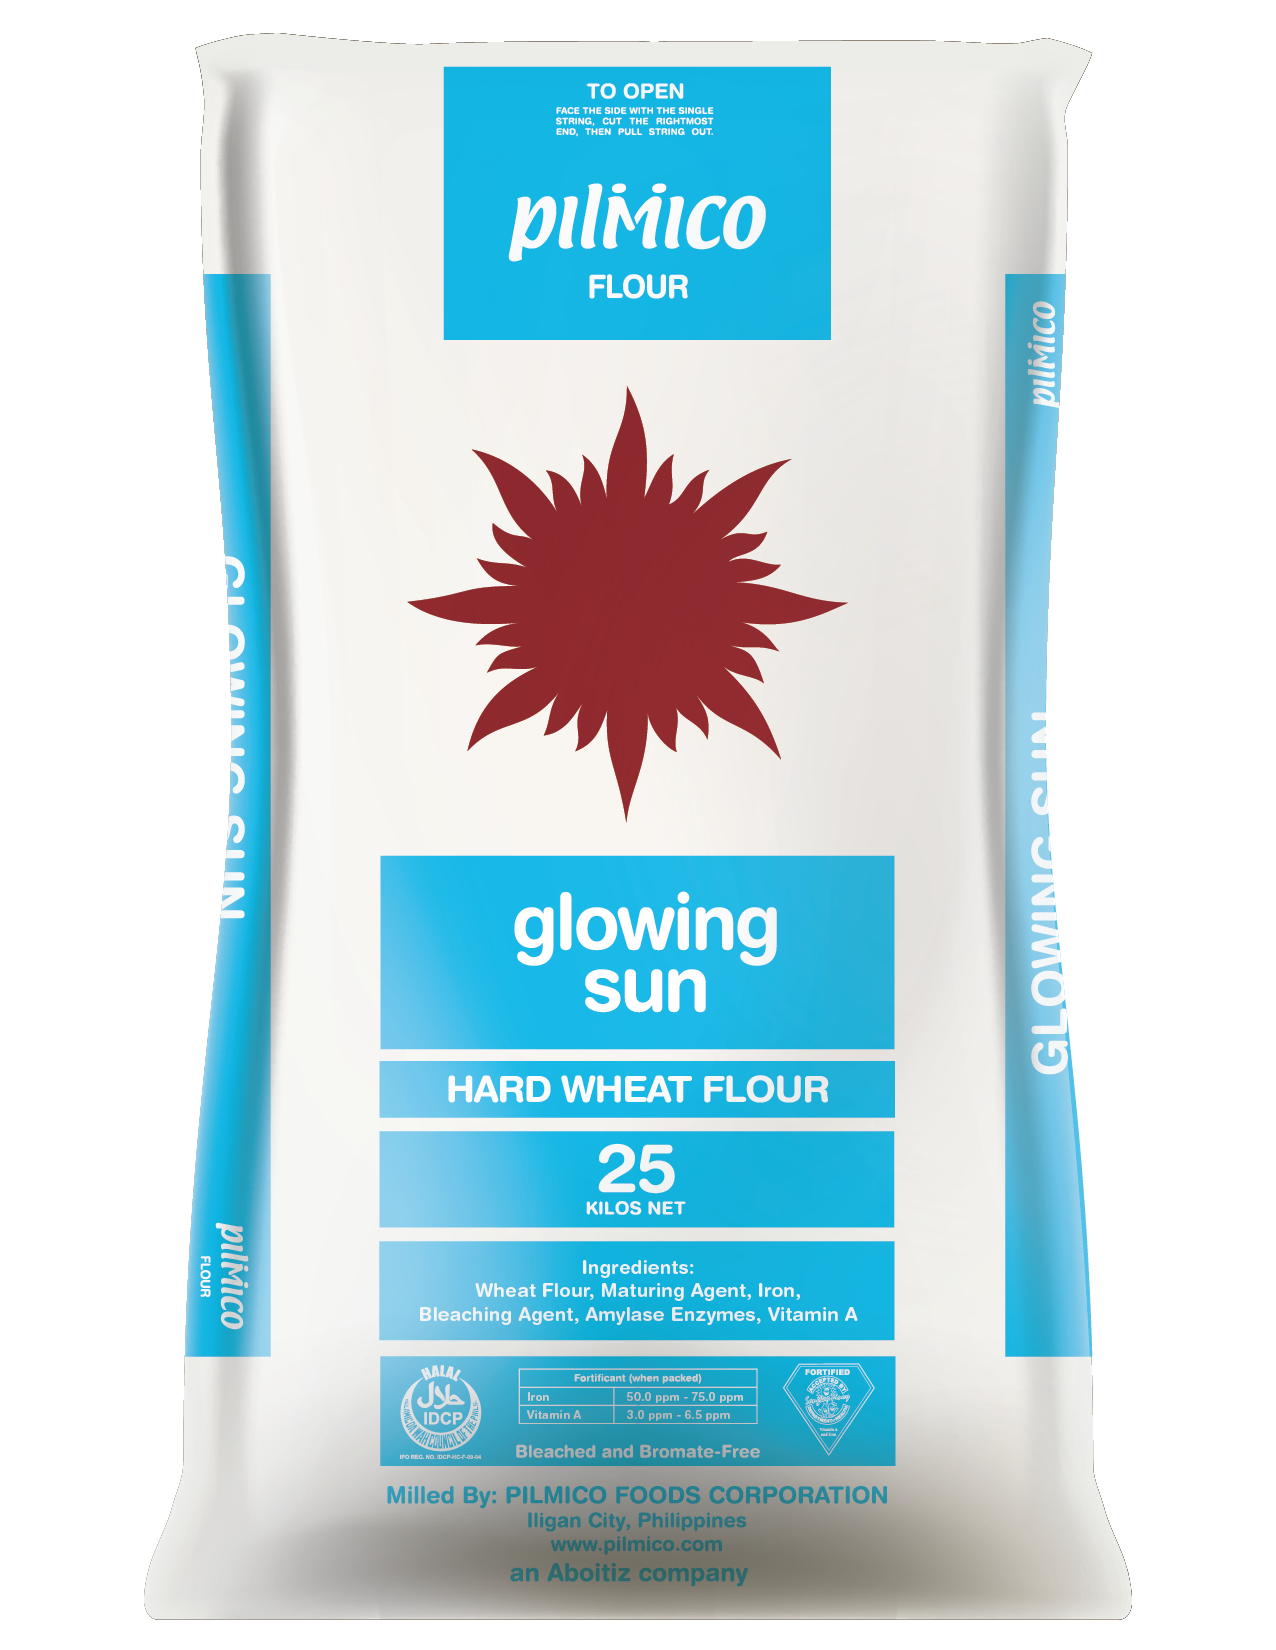 Pilmico Flour Sack 2018 - Glowing Sun Hard Wheat Flour 25kg